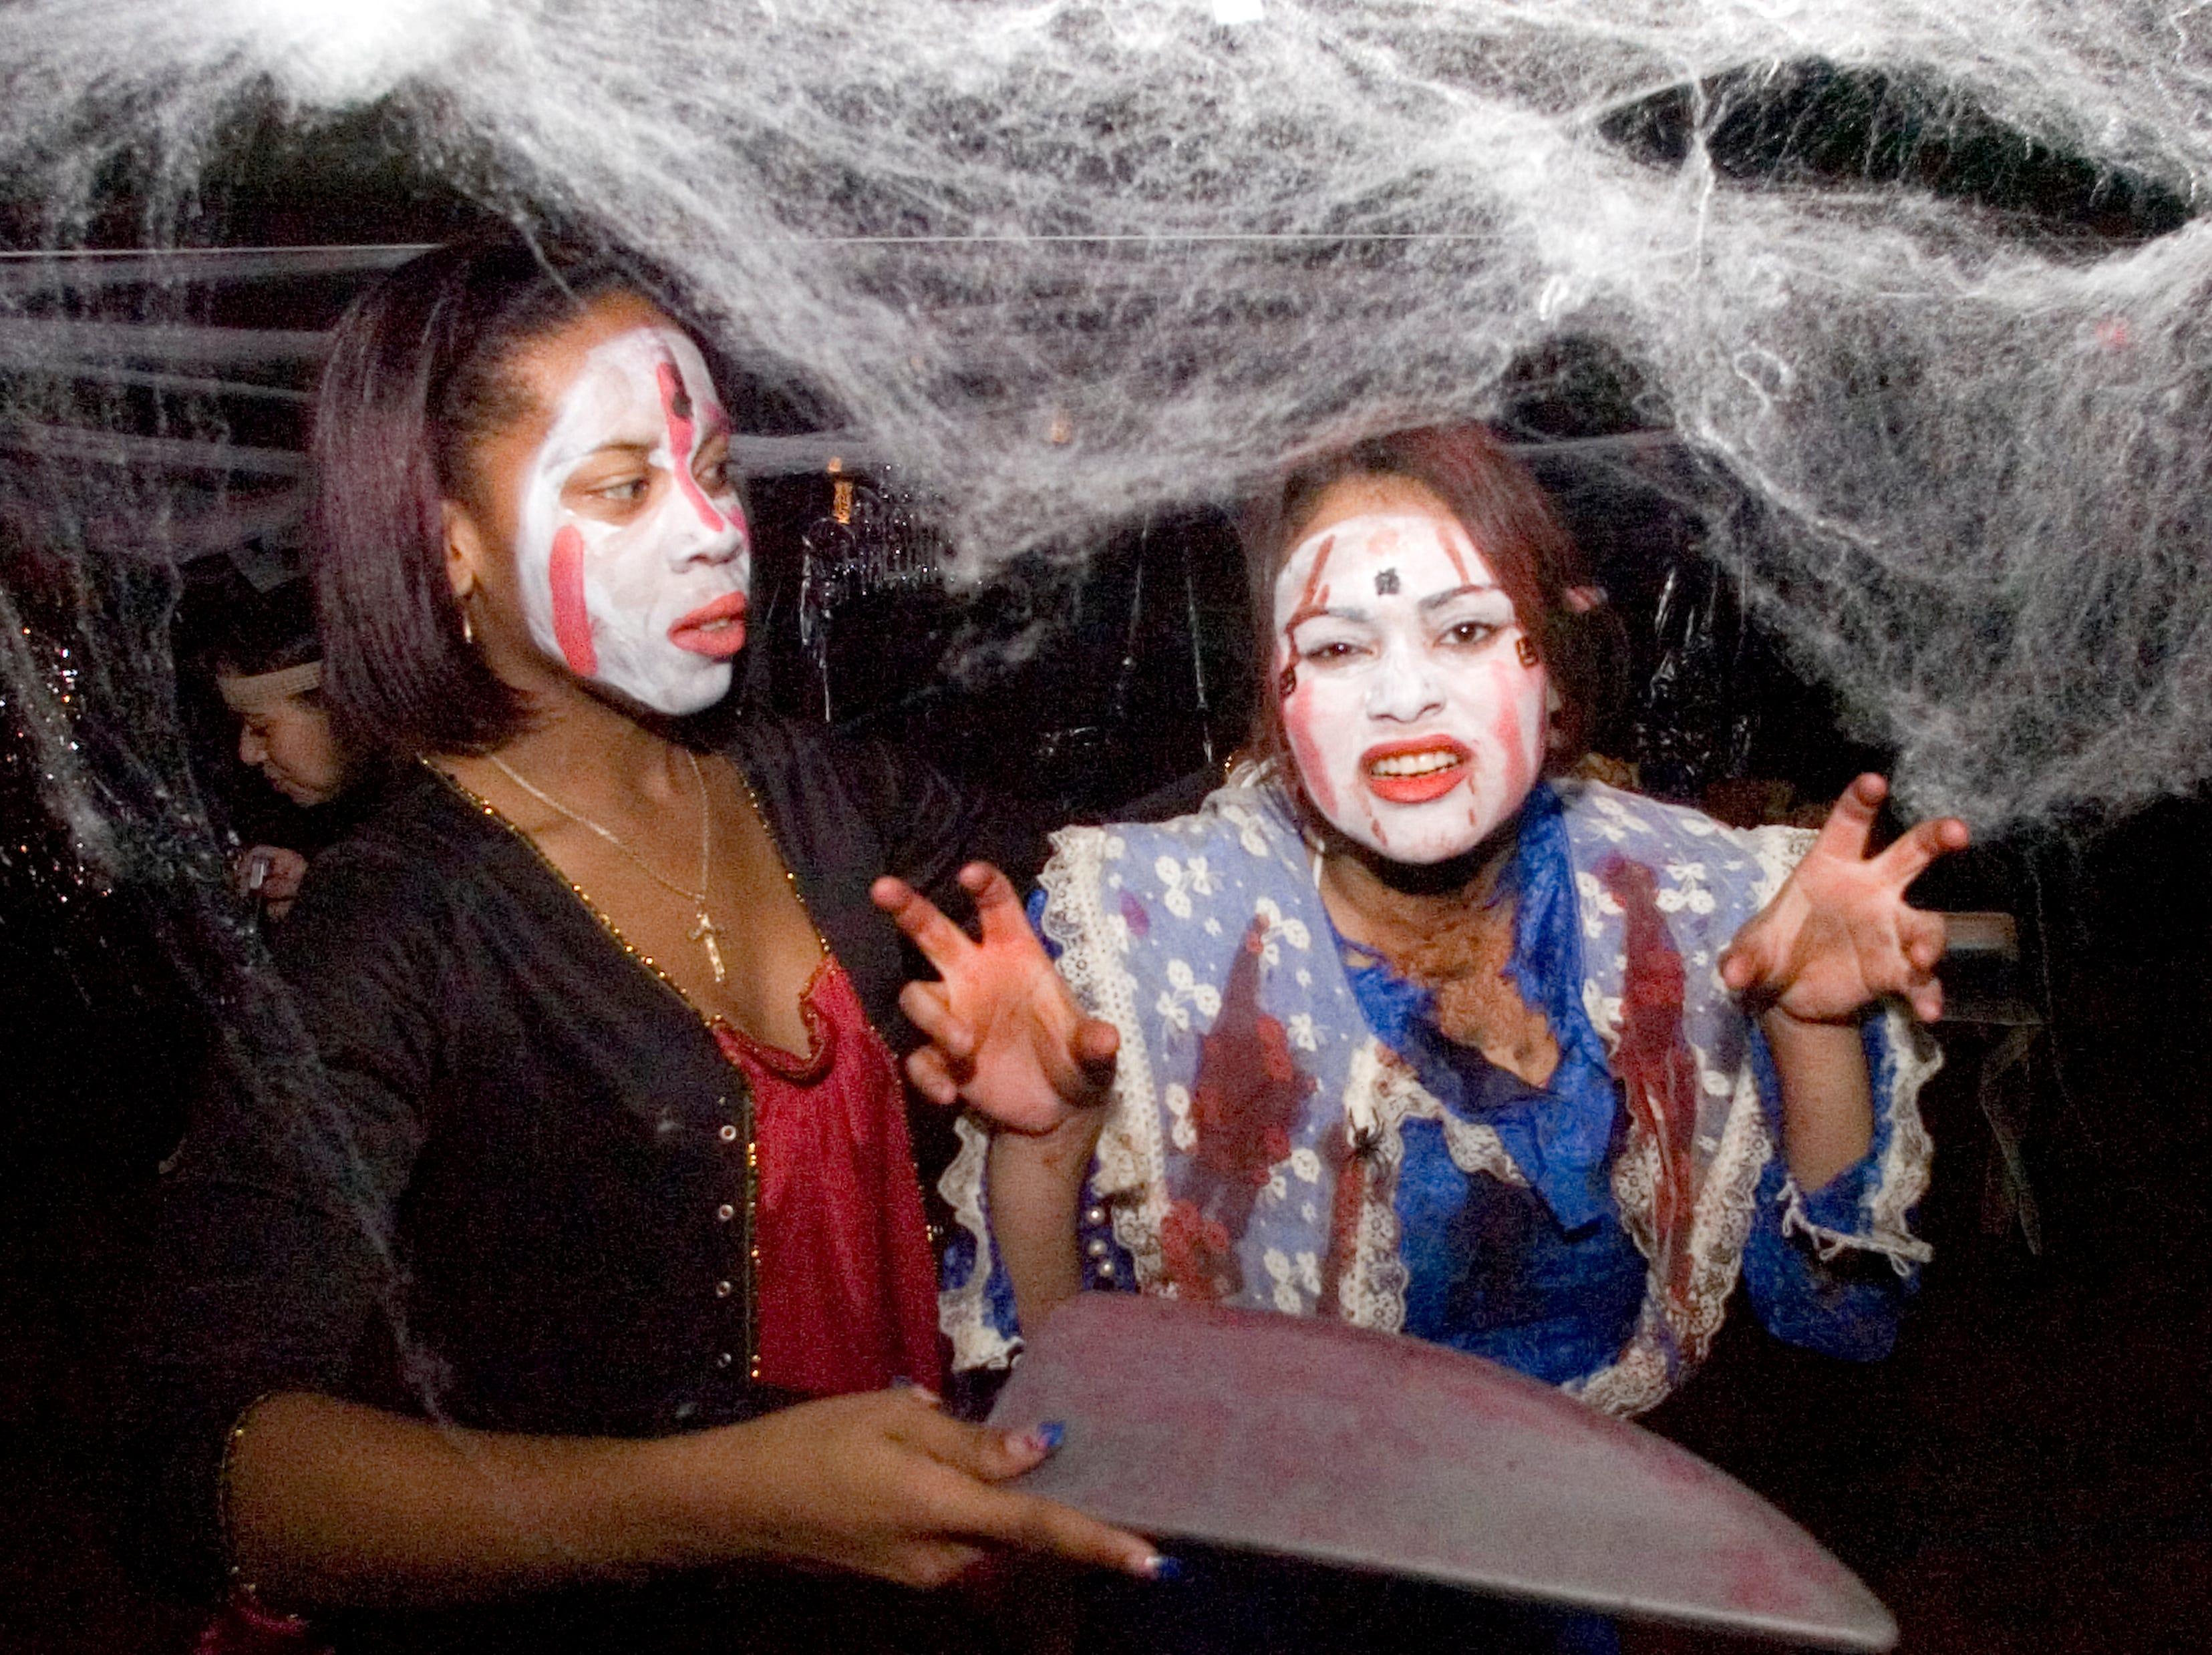 2005: Shakima Brown, left, and Irene Agron, teenage members of the Boys & Girls Club of Binghamton, participate in a haunted maze Wednesday evening at the club's facility in Binghamton. This is the third year the club has offered a haunted tour that was followed by a dinner and in-house trick-or-treating.